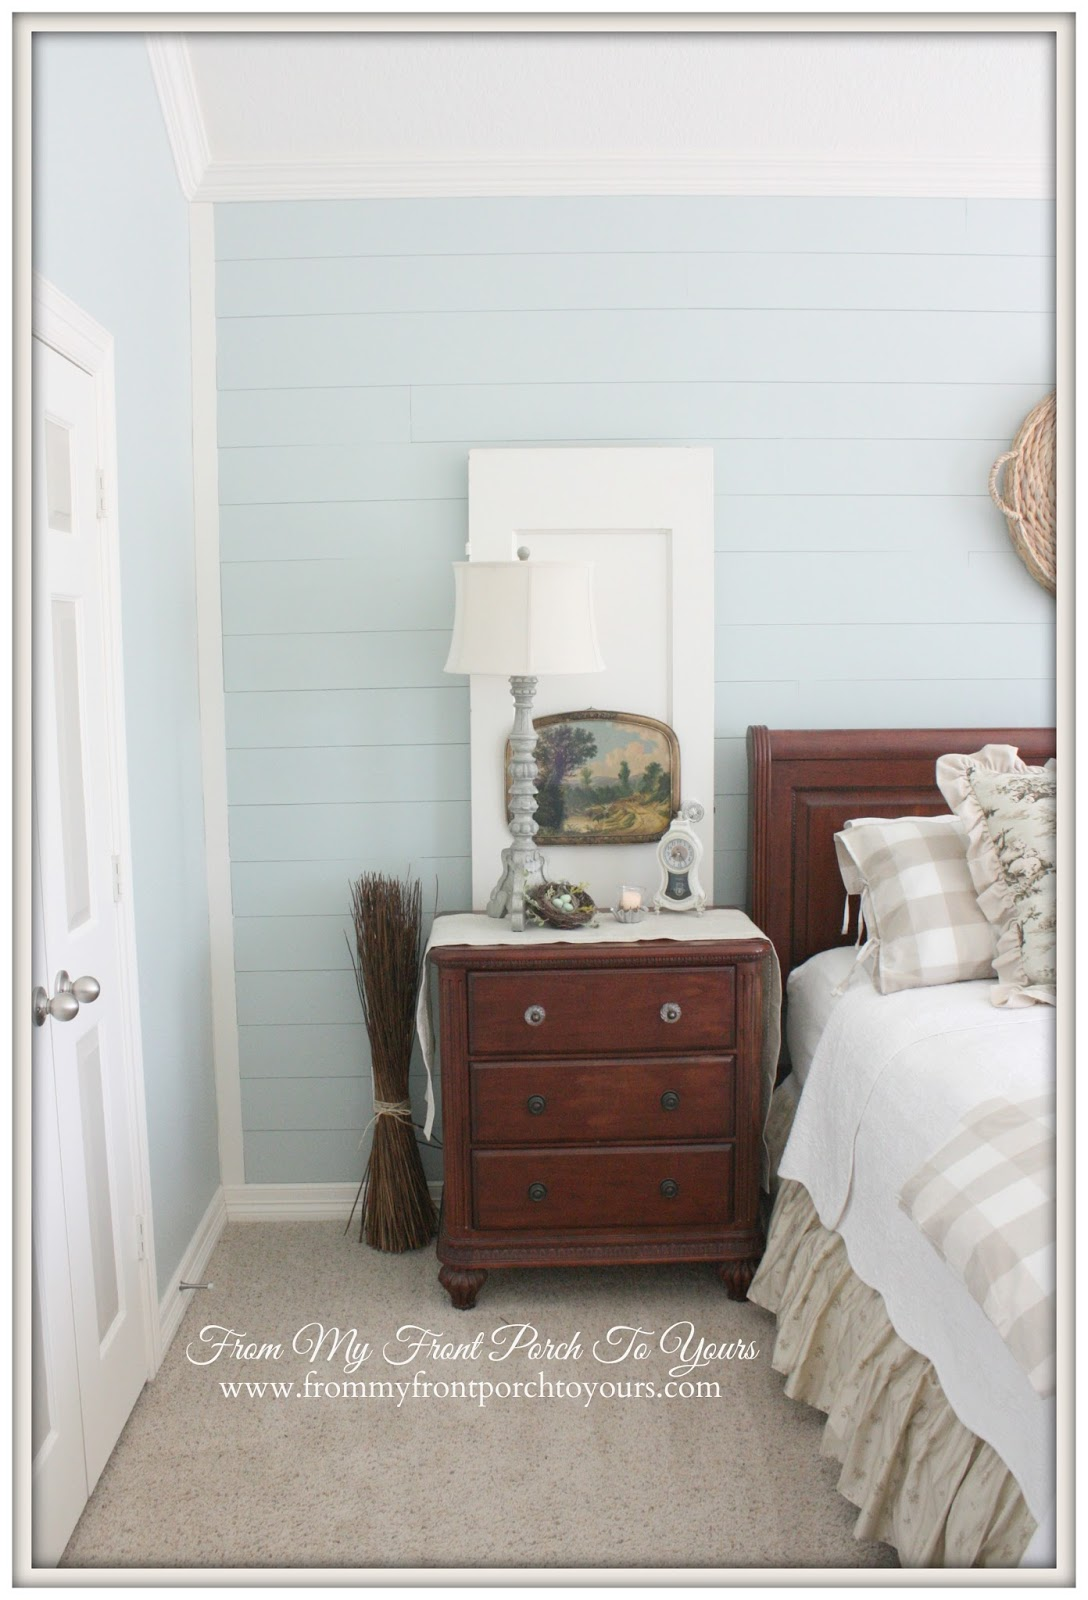 From My Front Porch To Yours- French Farmhouse Bedroom Makeover-Sherwin Williams 6211 Rainwashed